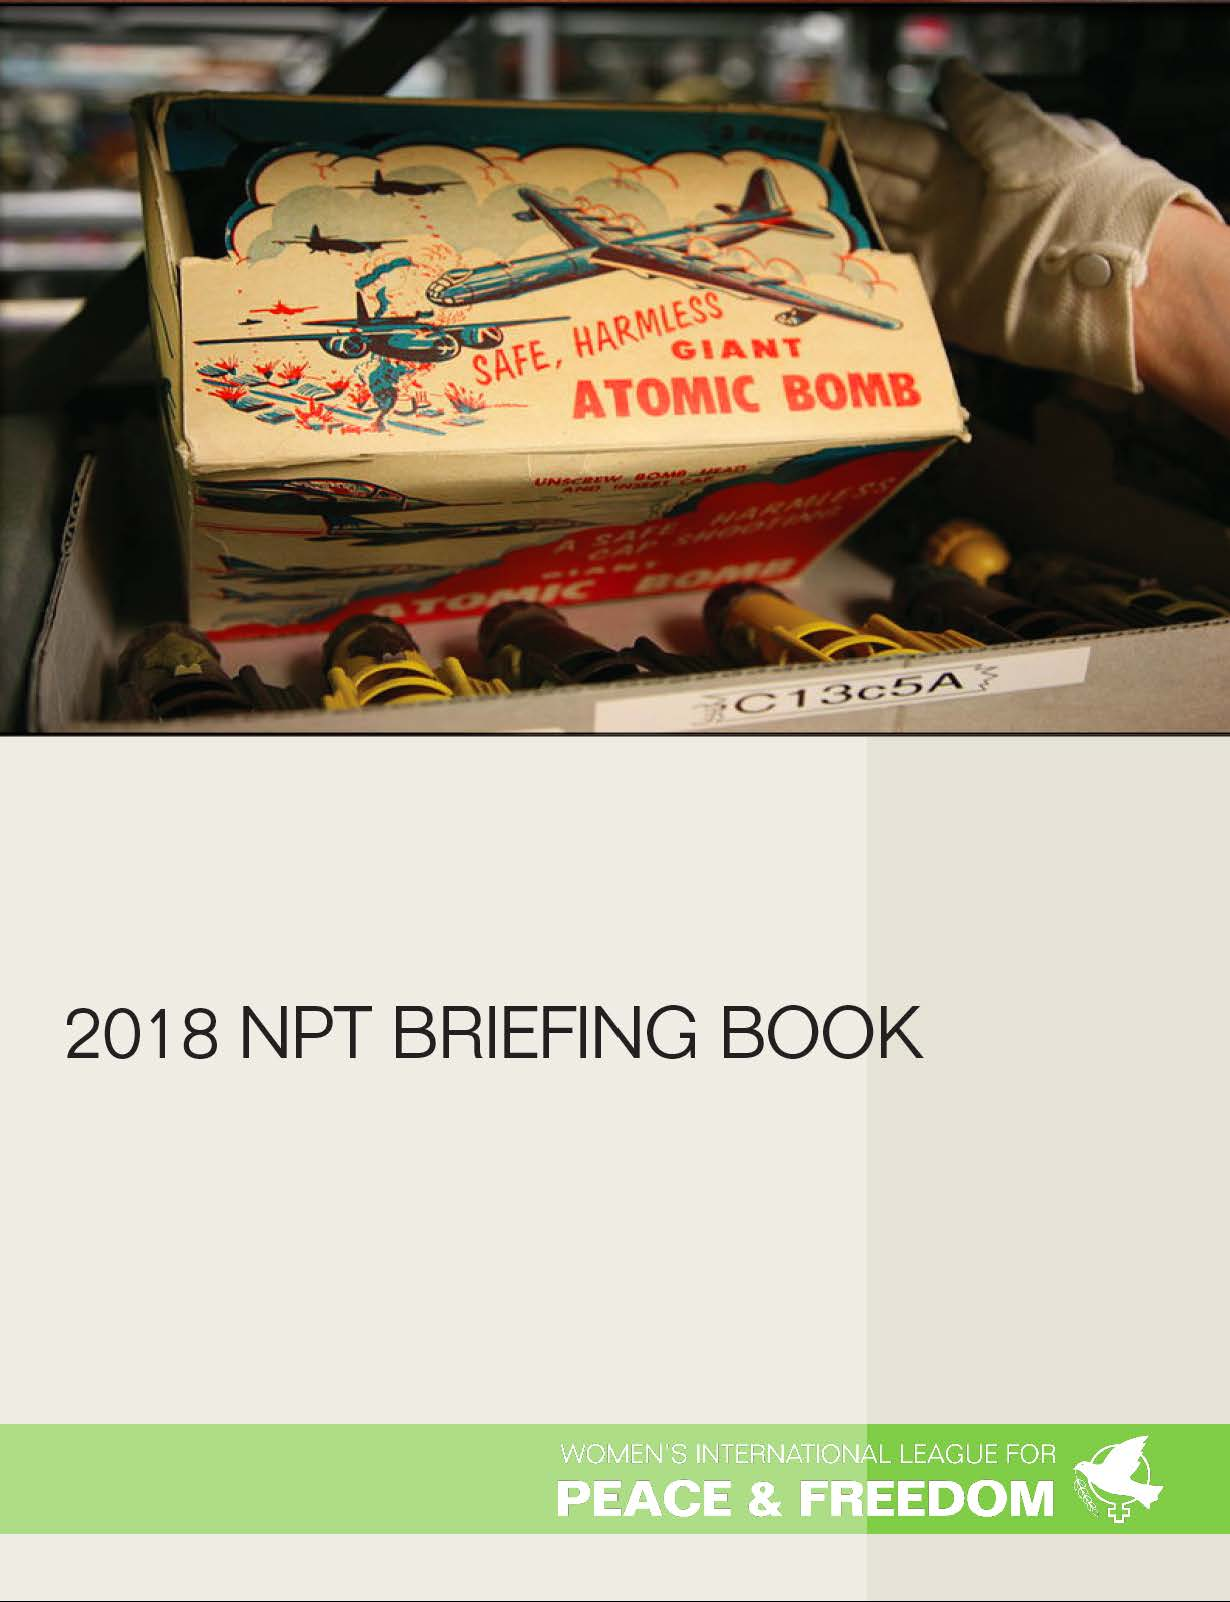 2018-npt-briefing-book-cover